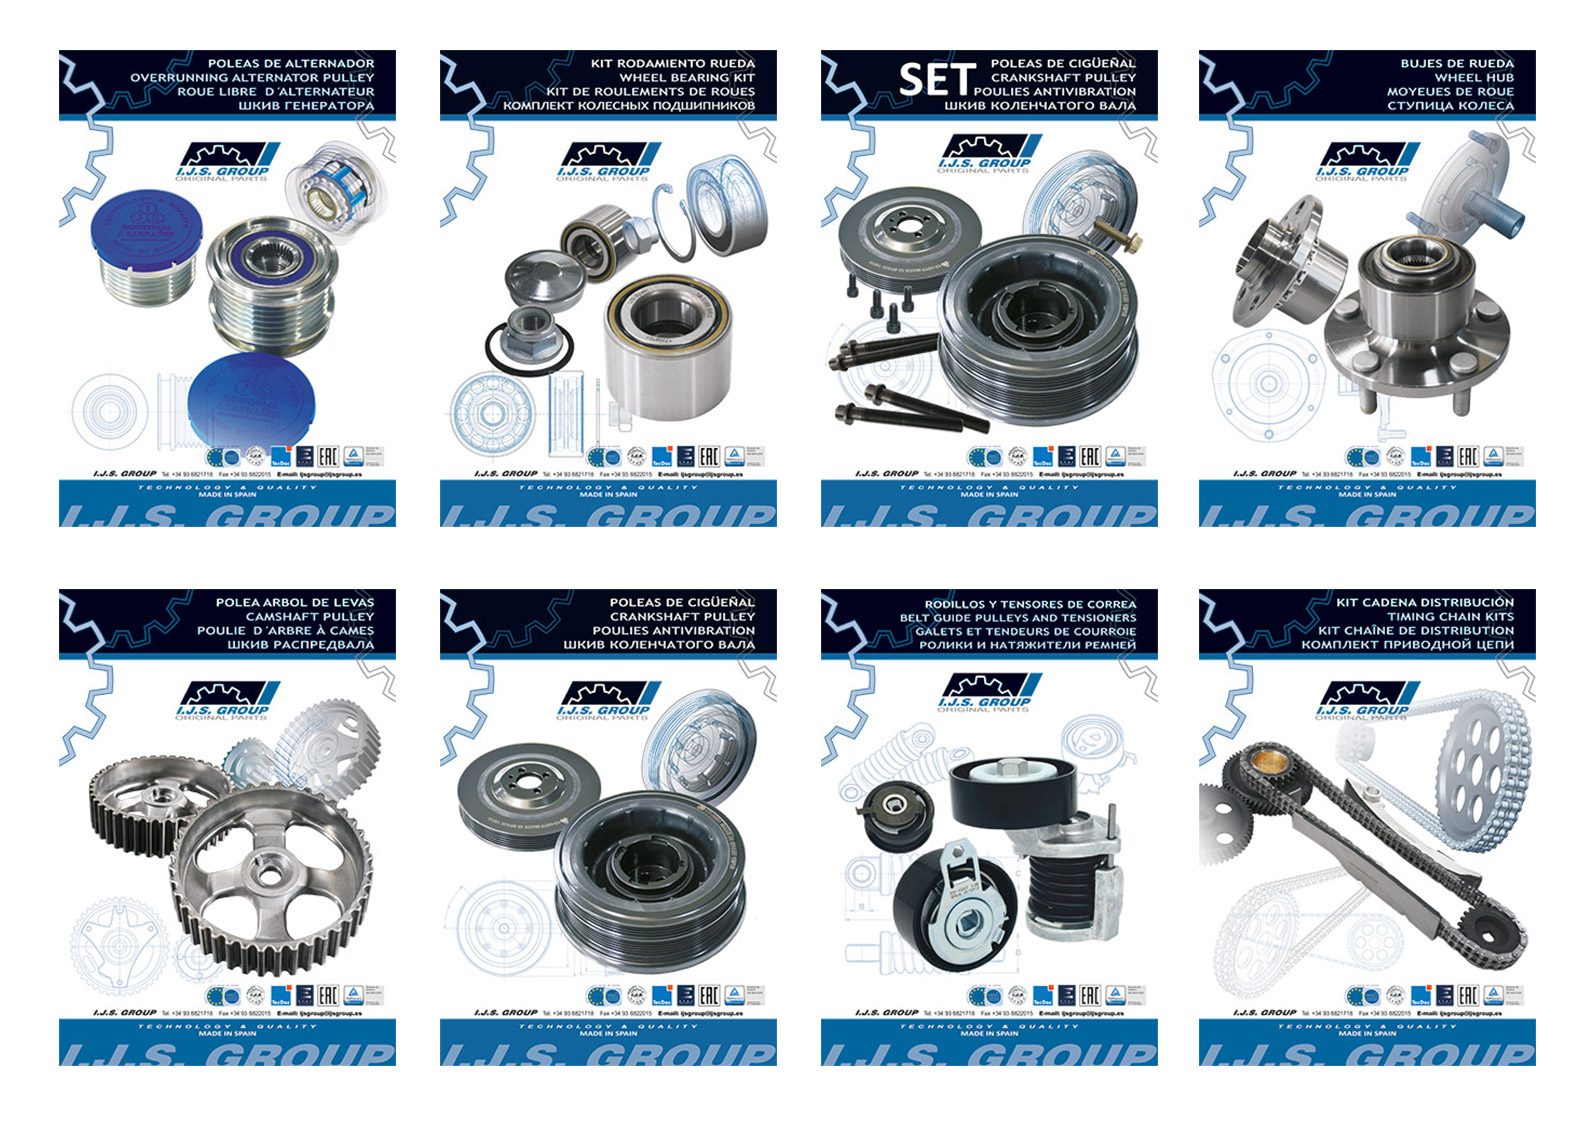 Our new catalogs are available with our last innovations